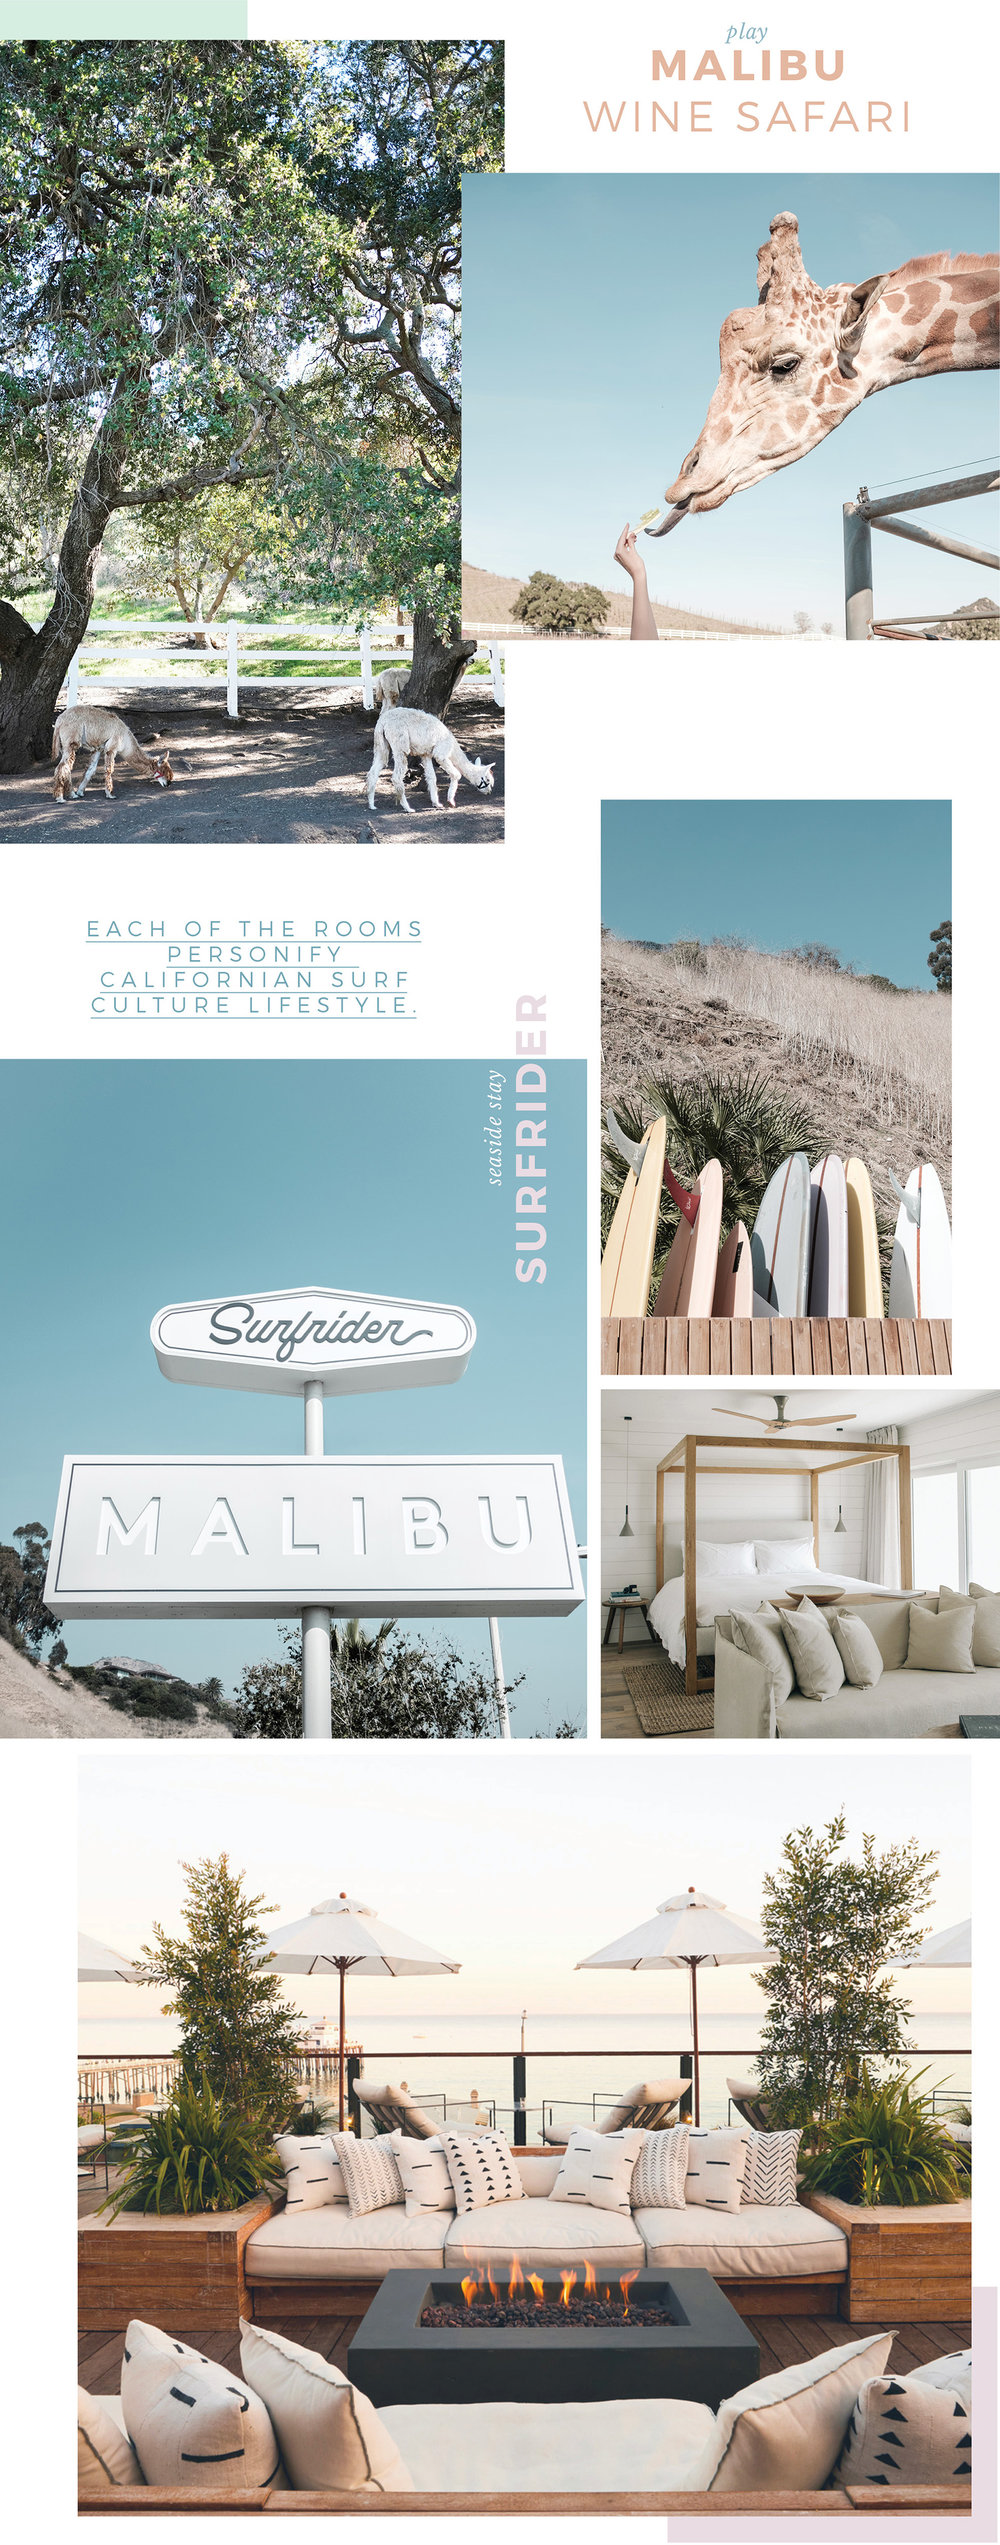 adore_blog_malibu_wine_SAFARI_animals_surfrider_hotel_beach_culture_LA_guide_holiday.jpg